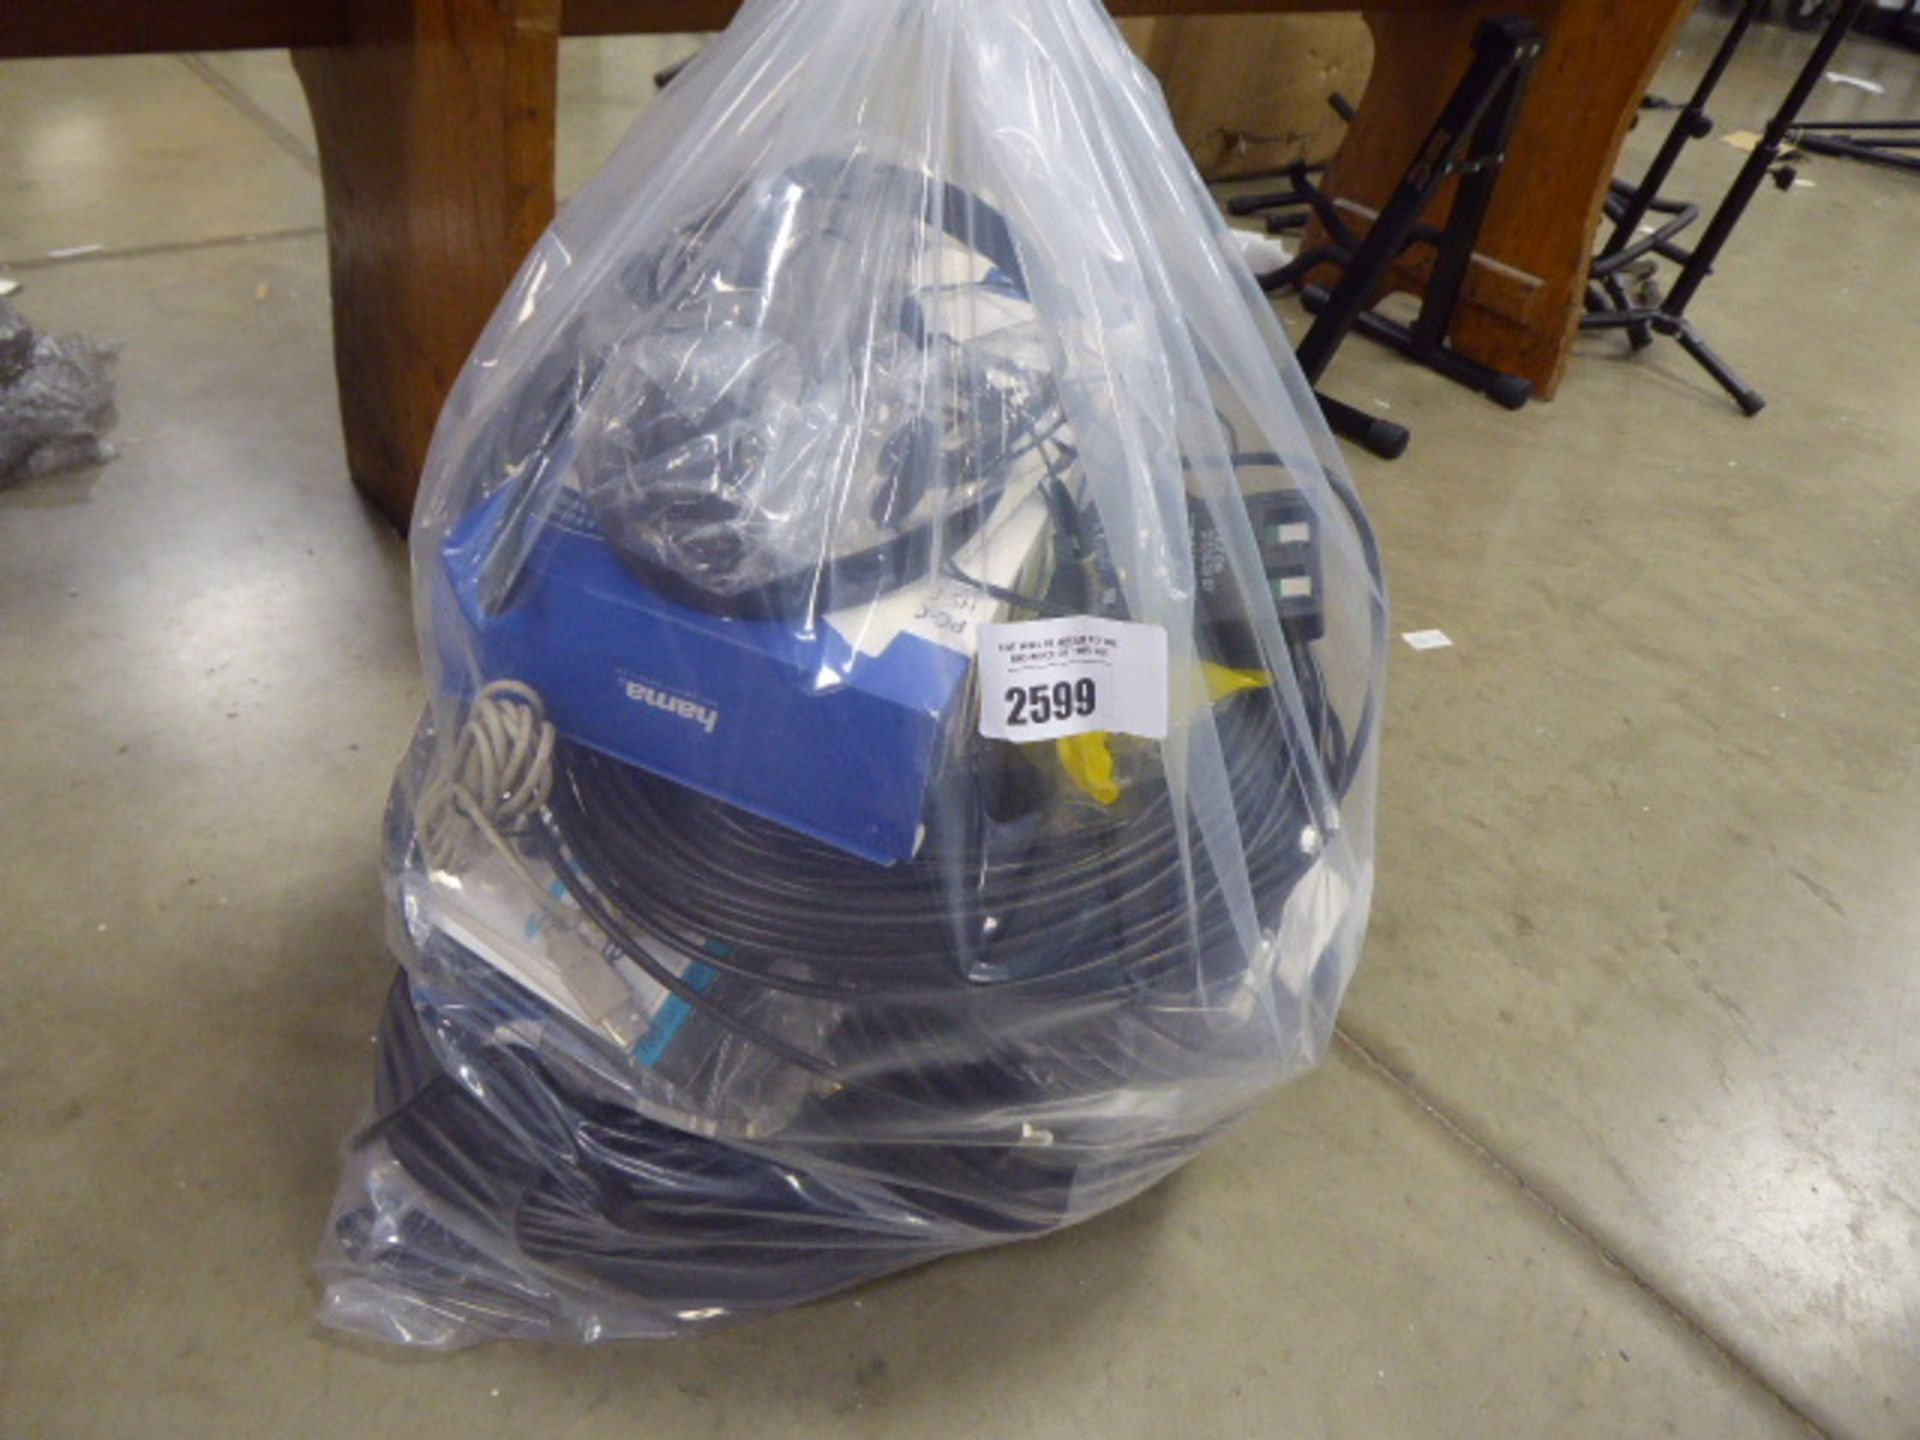 Bag containing a large quantity of HDMI audio and other extension cable kits